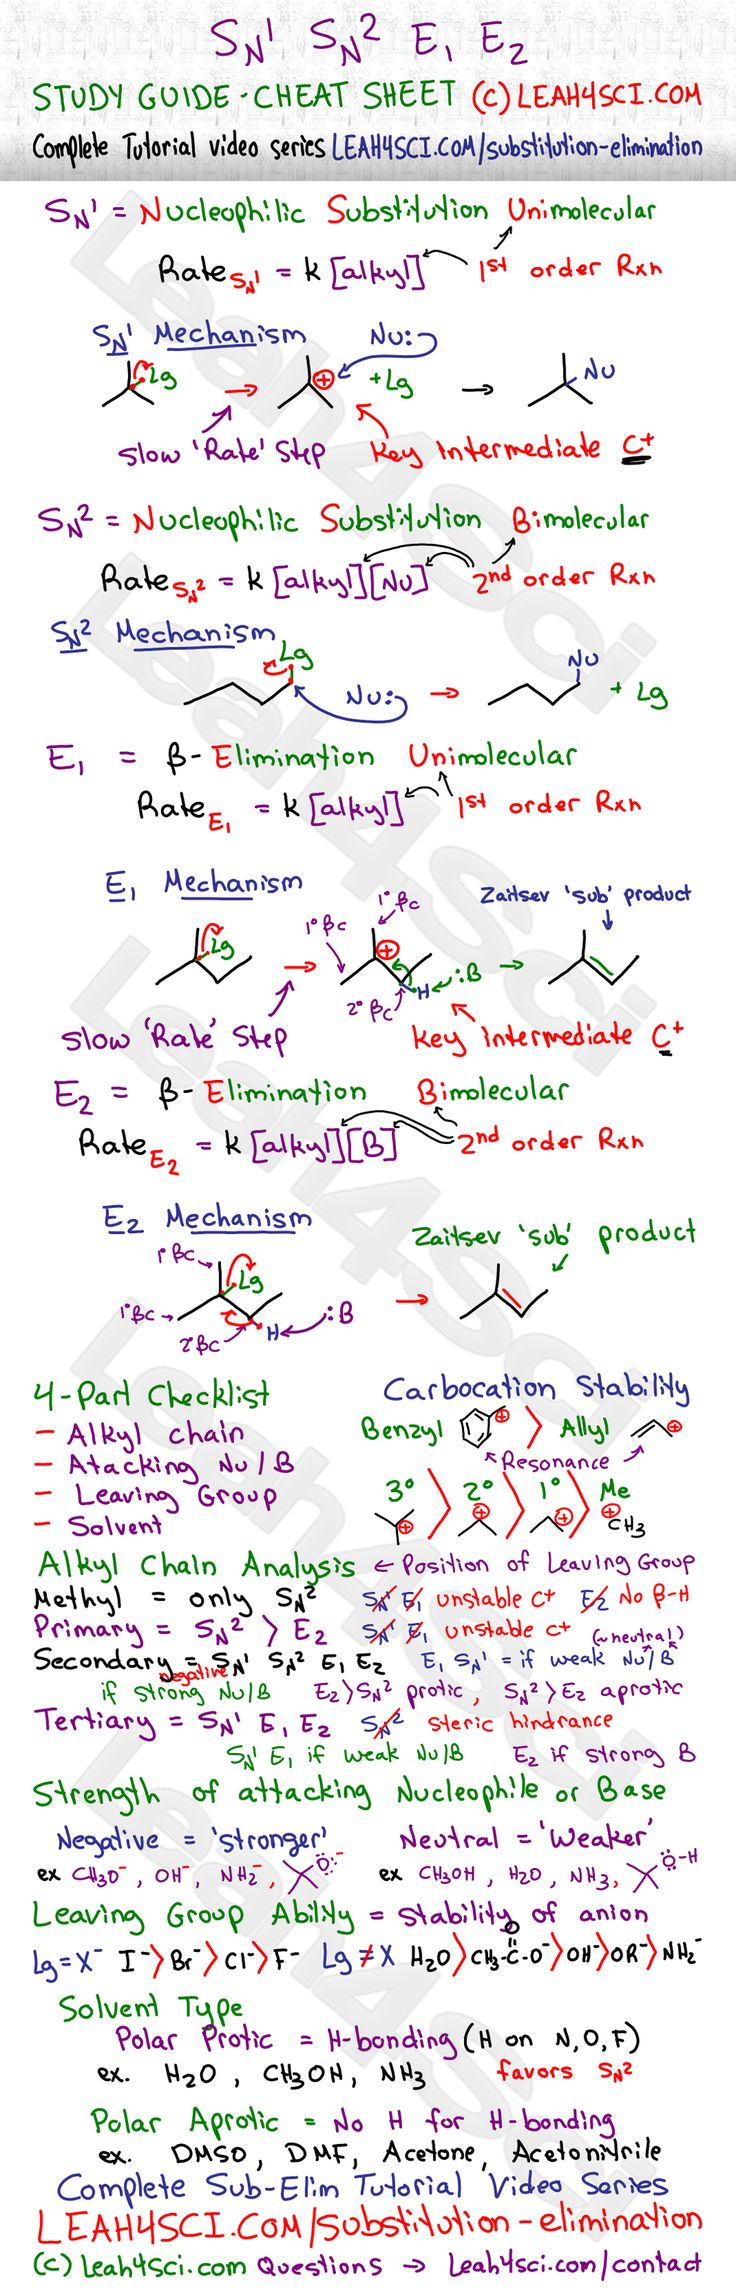 best ideas about chemistry help chemistry organic chemistry study guide cheat sheet handy reference for determining between unimolecular and bimolecular substitution and elimination reactions